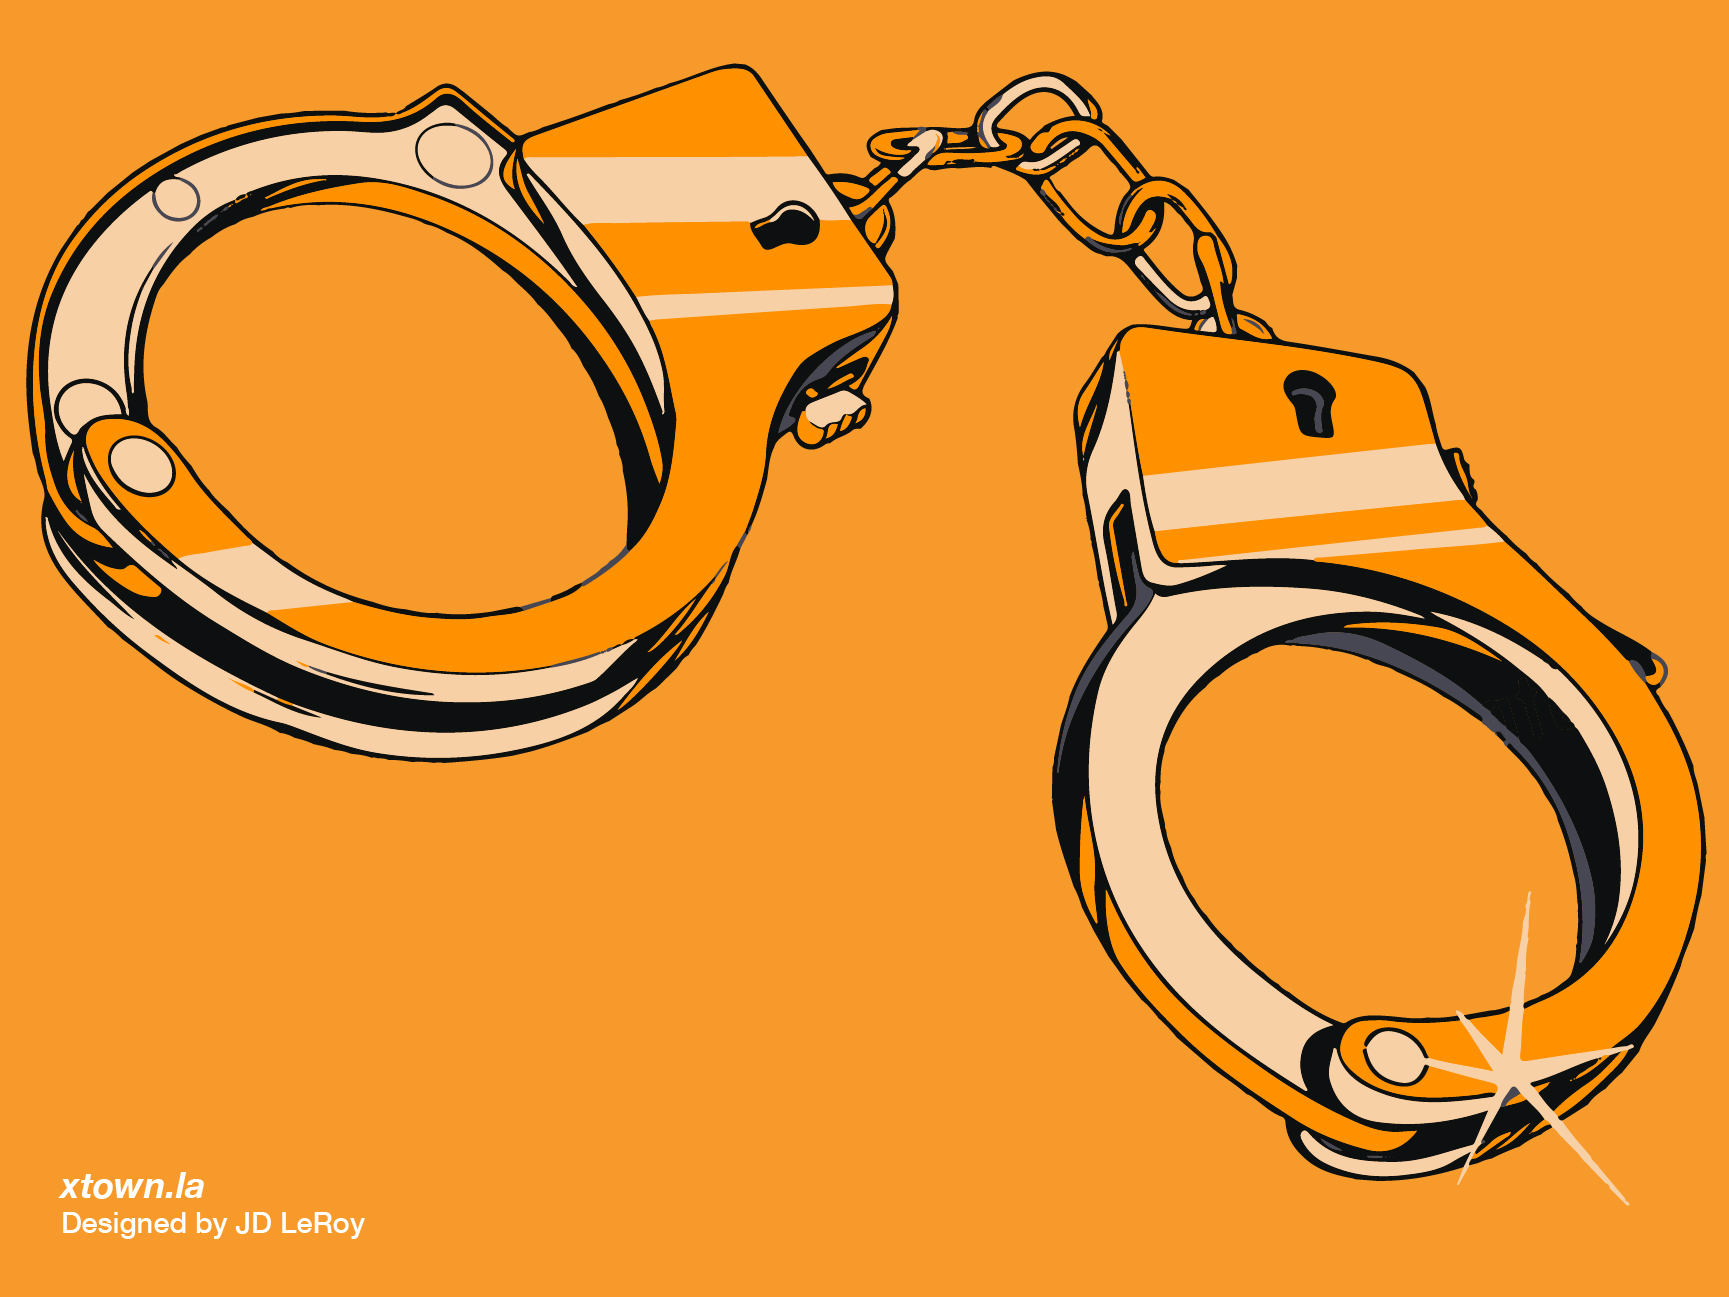 Handcuffs illustration